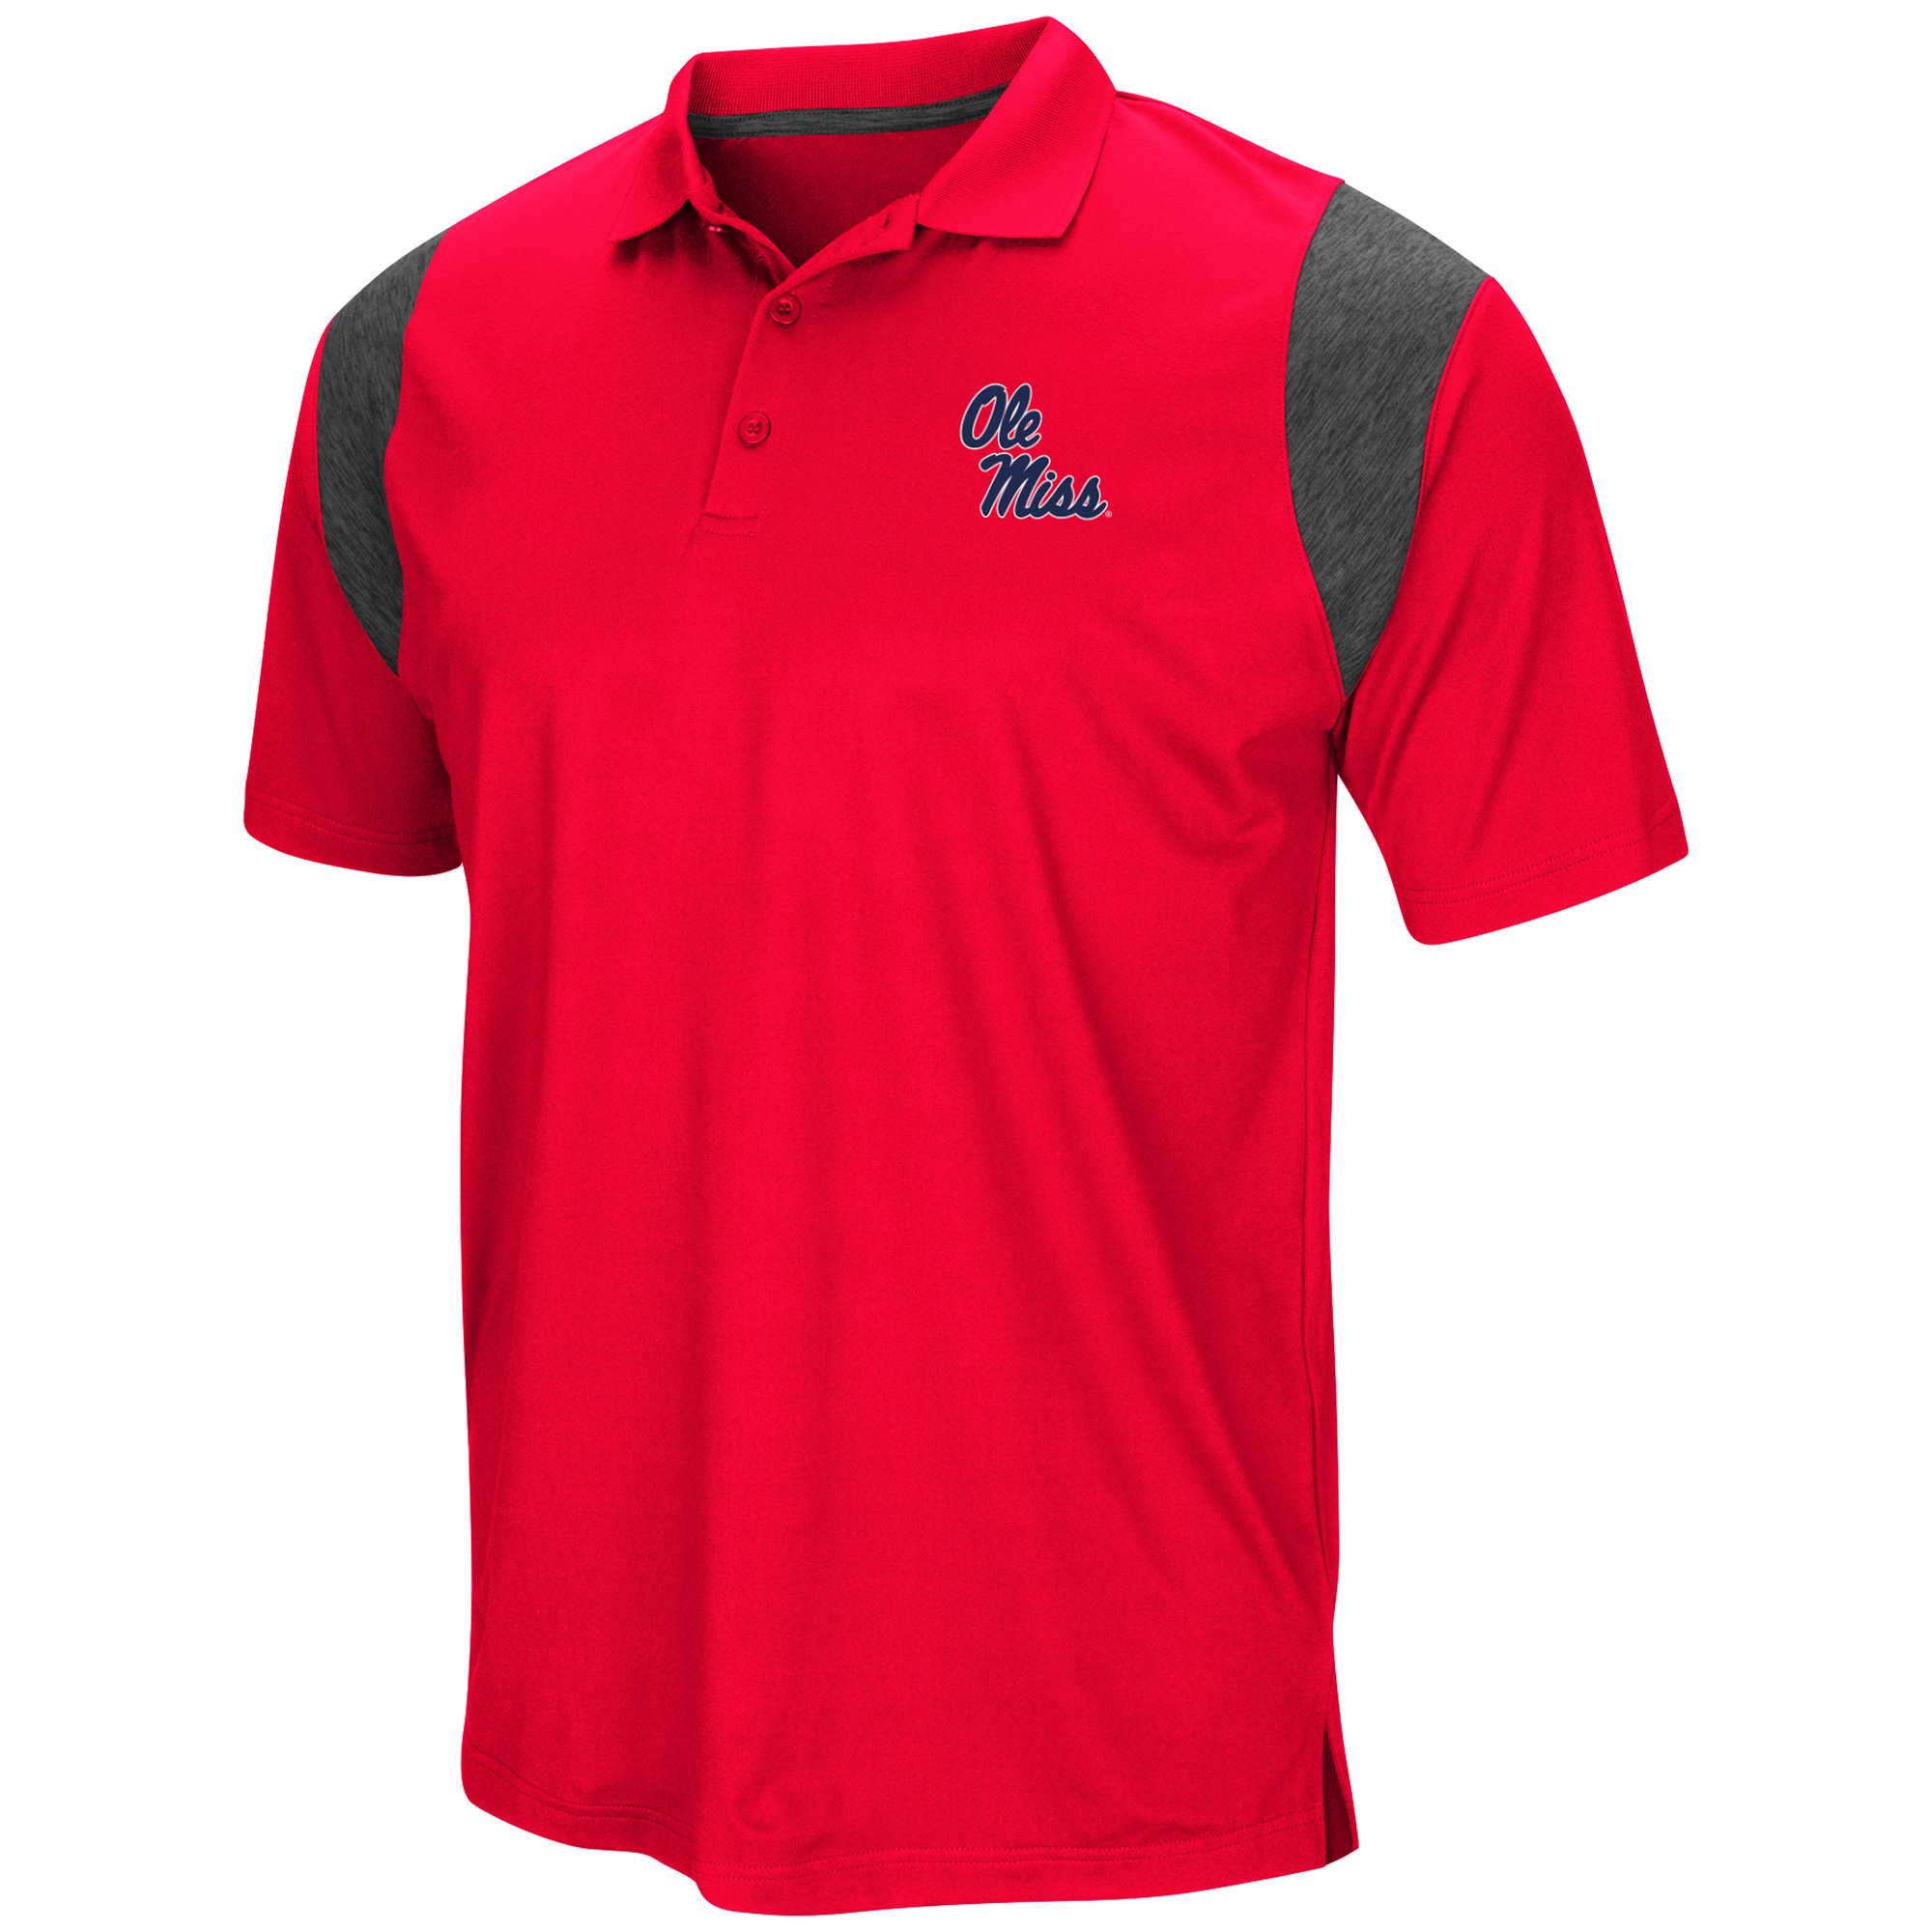 Ole Miss Friend Polo